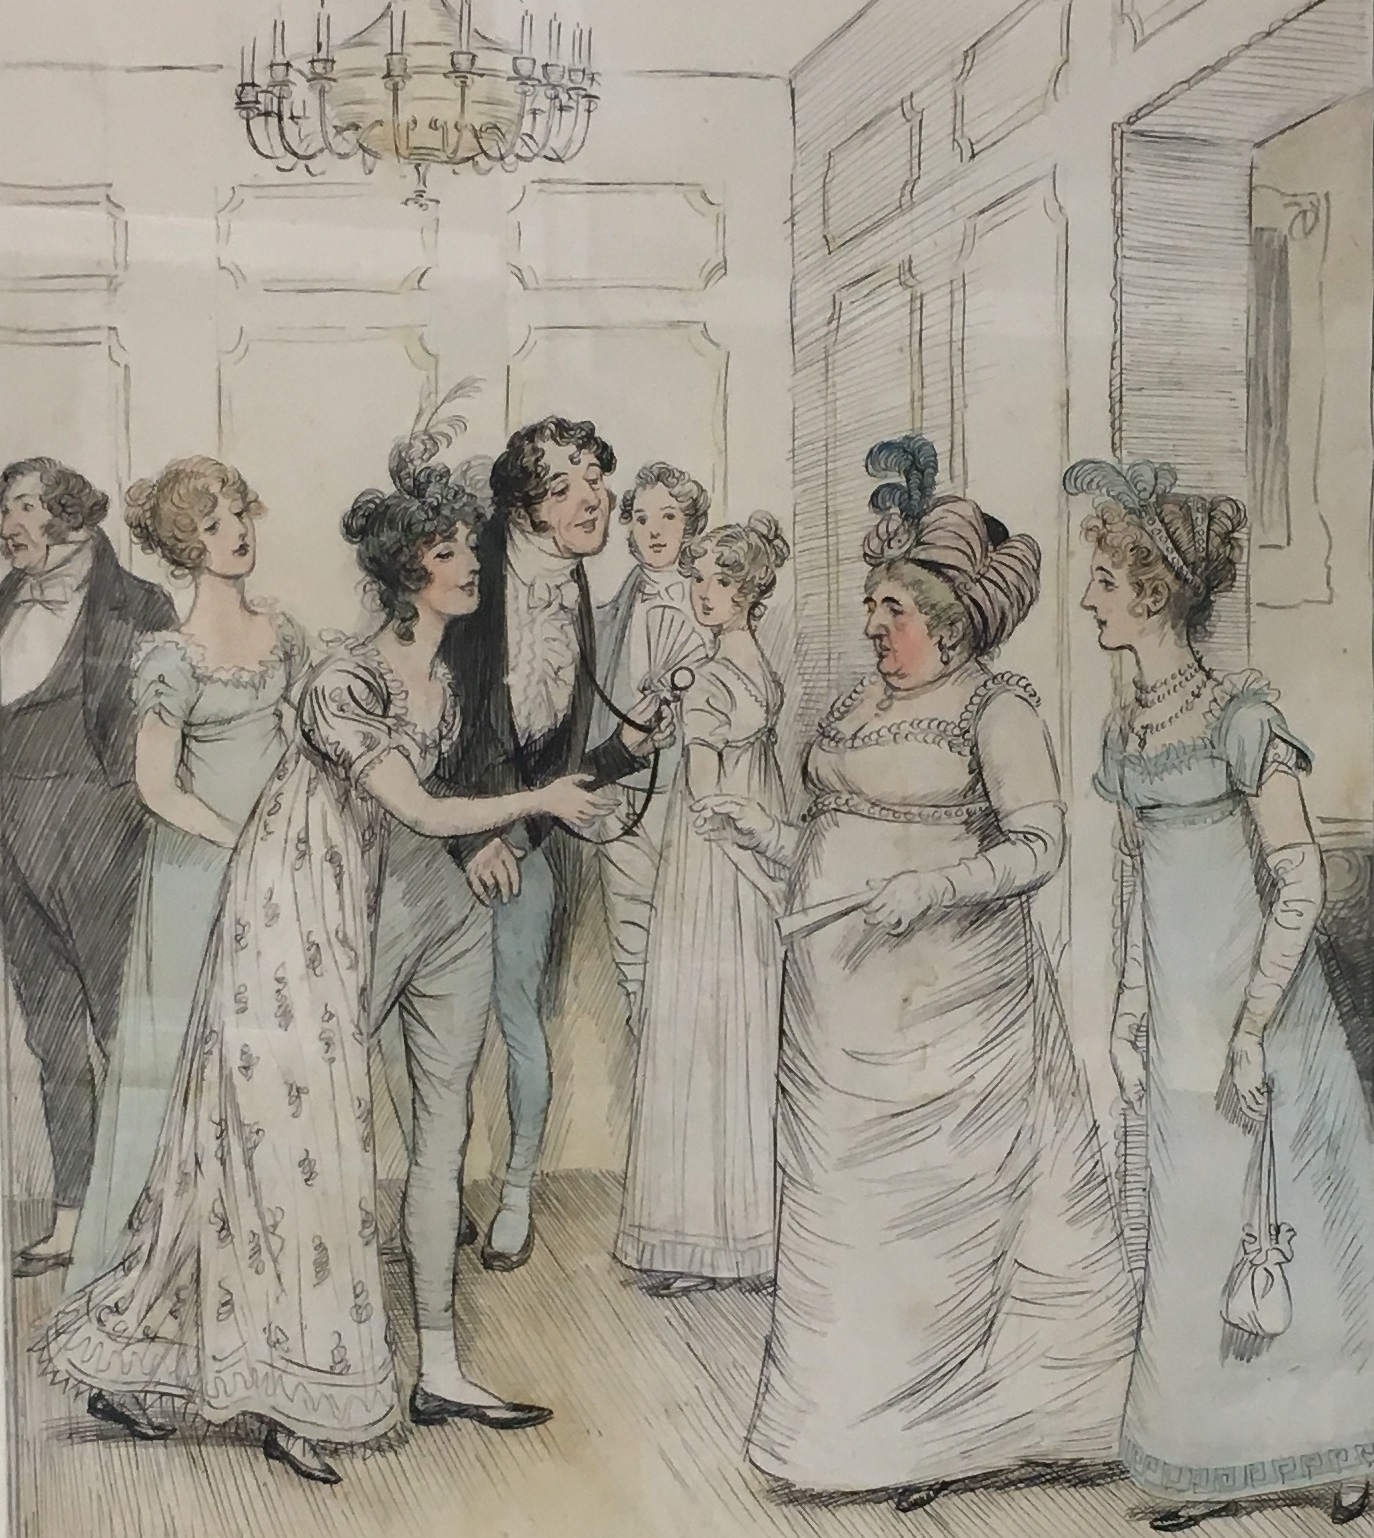 Illustration of a fashionable party in Bath, by Hugh Thomson